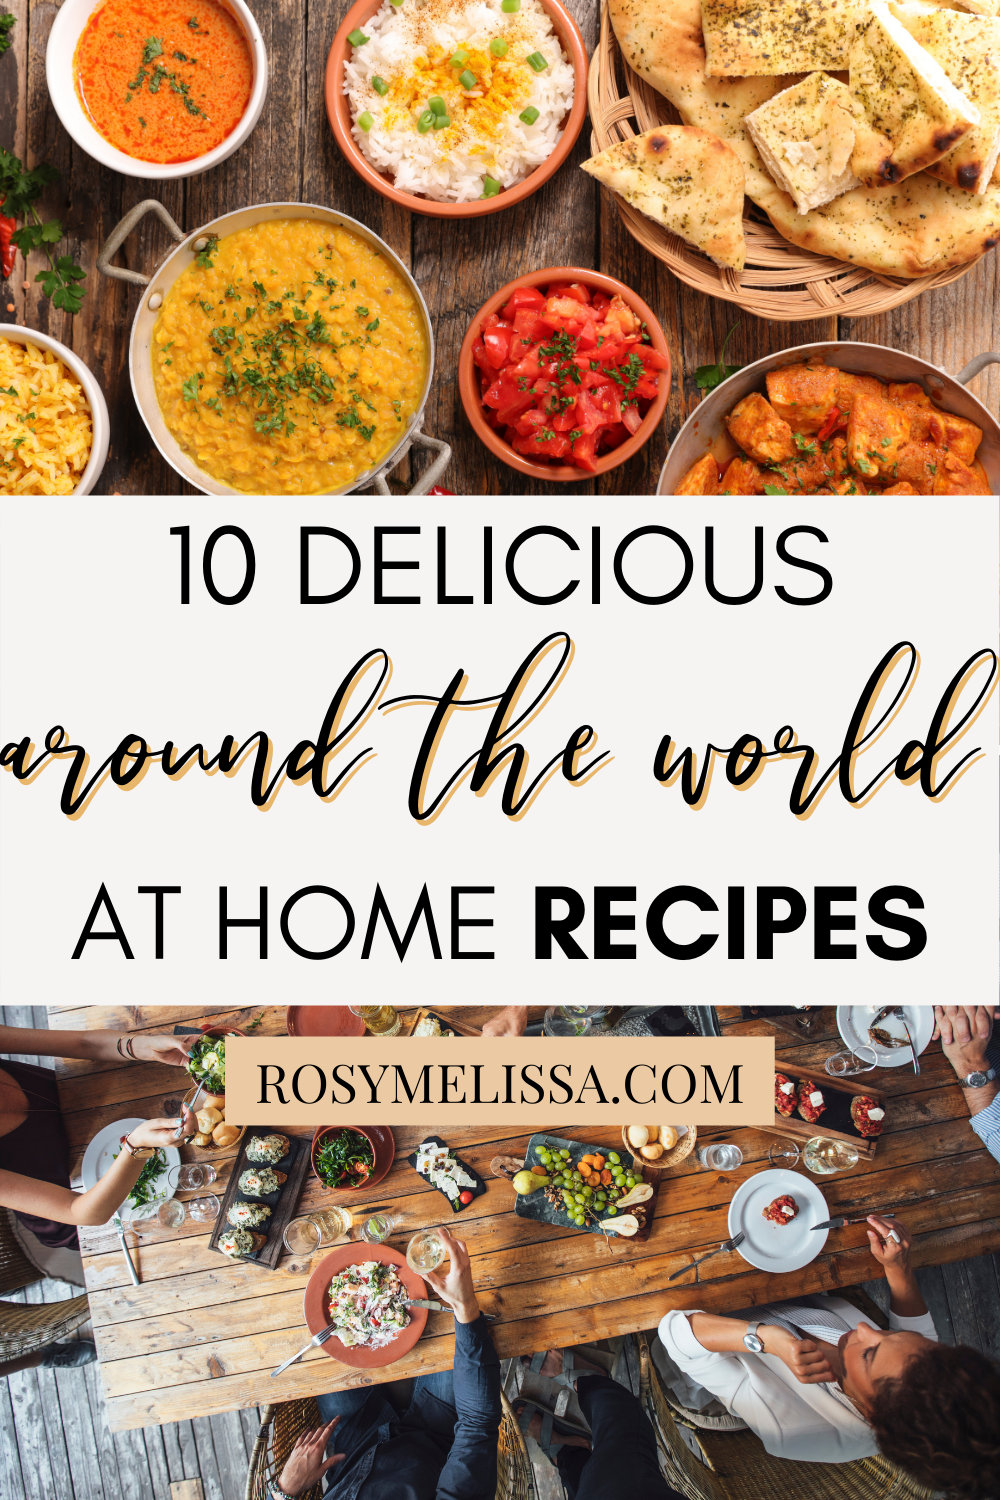 around the world recipes, local cuisines, recipes to cook at home, travel food